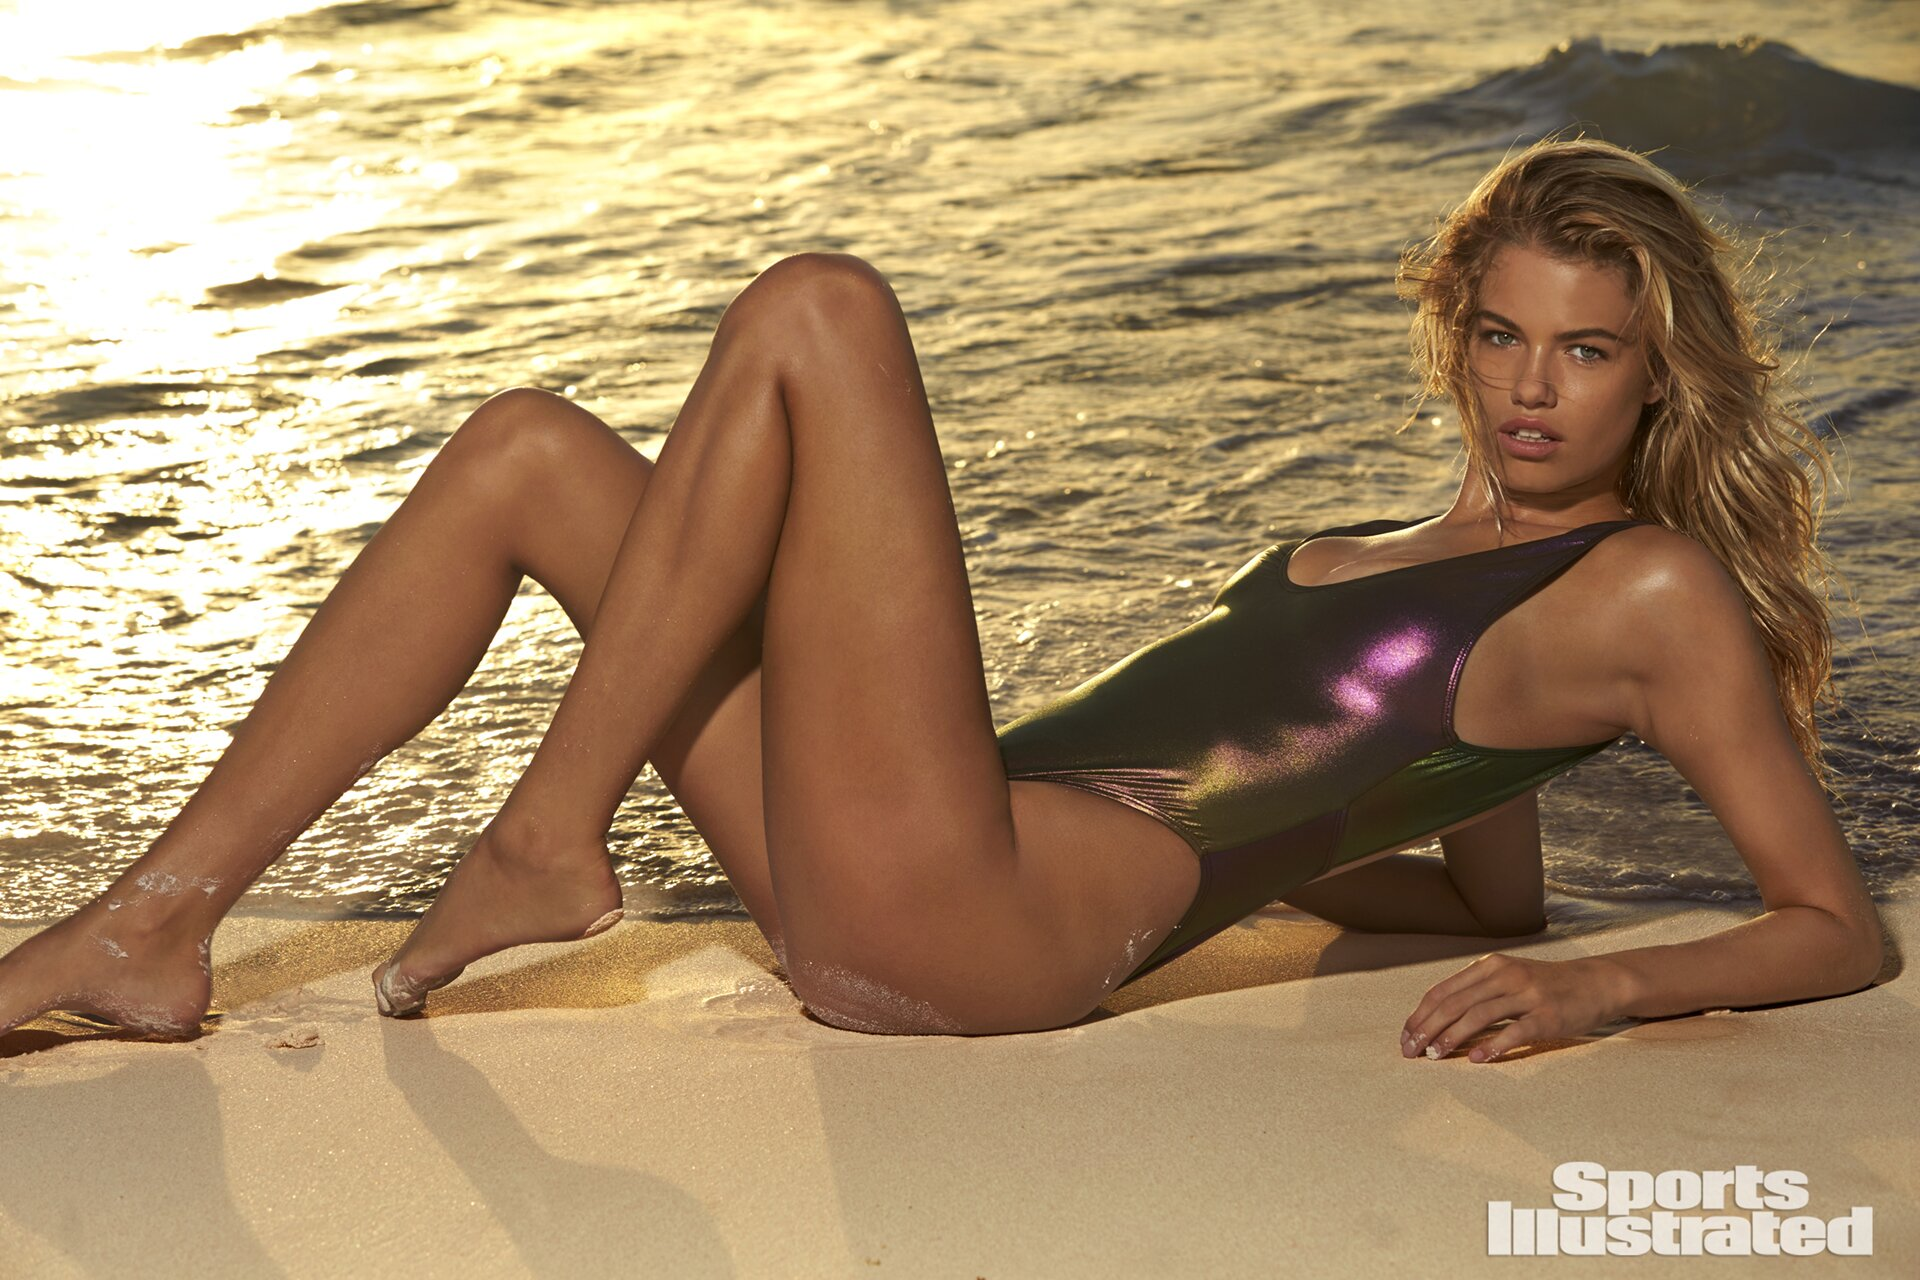 "<p>Hailey Clauson was photographed by Ben Watts in the Bahamas. Swimsuit by <a href=""https://www.swimspot.com/shop/new/sports-illustrated-rebel-plunge-front-1-pc/multi/?utm_source=si-com-swimsuit&amp;utm_medium=referral&amp;utm_campaign=website-links"" target=""_blank"">Sports Illustrated Swim</a></p>"